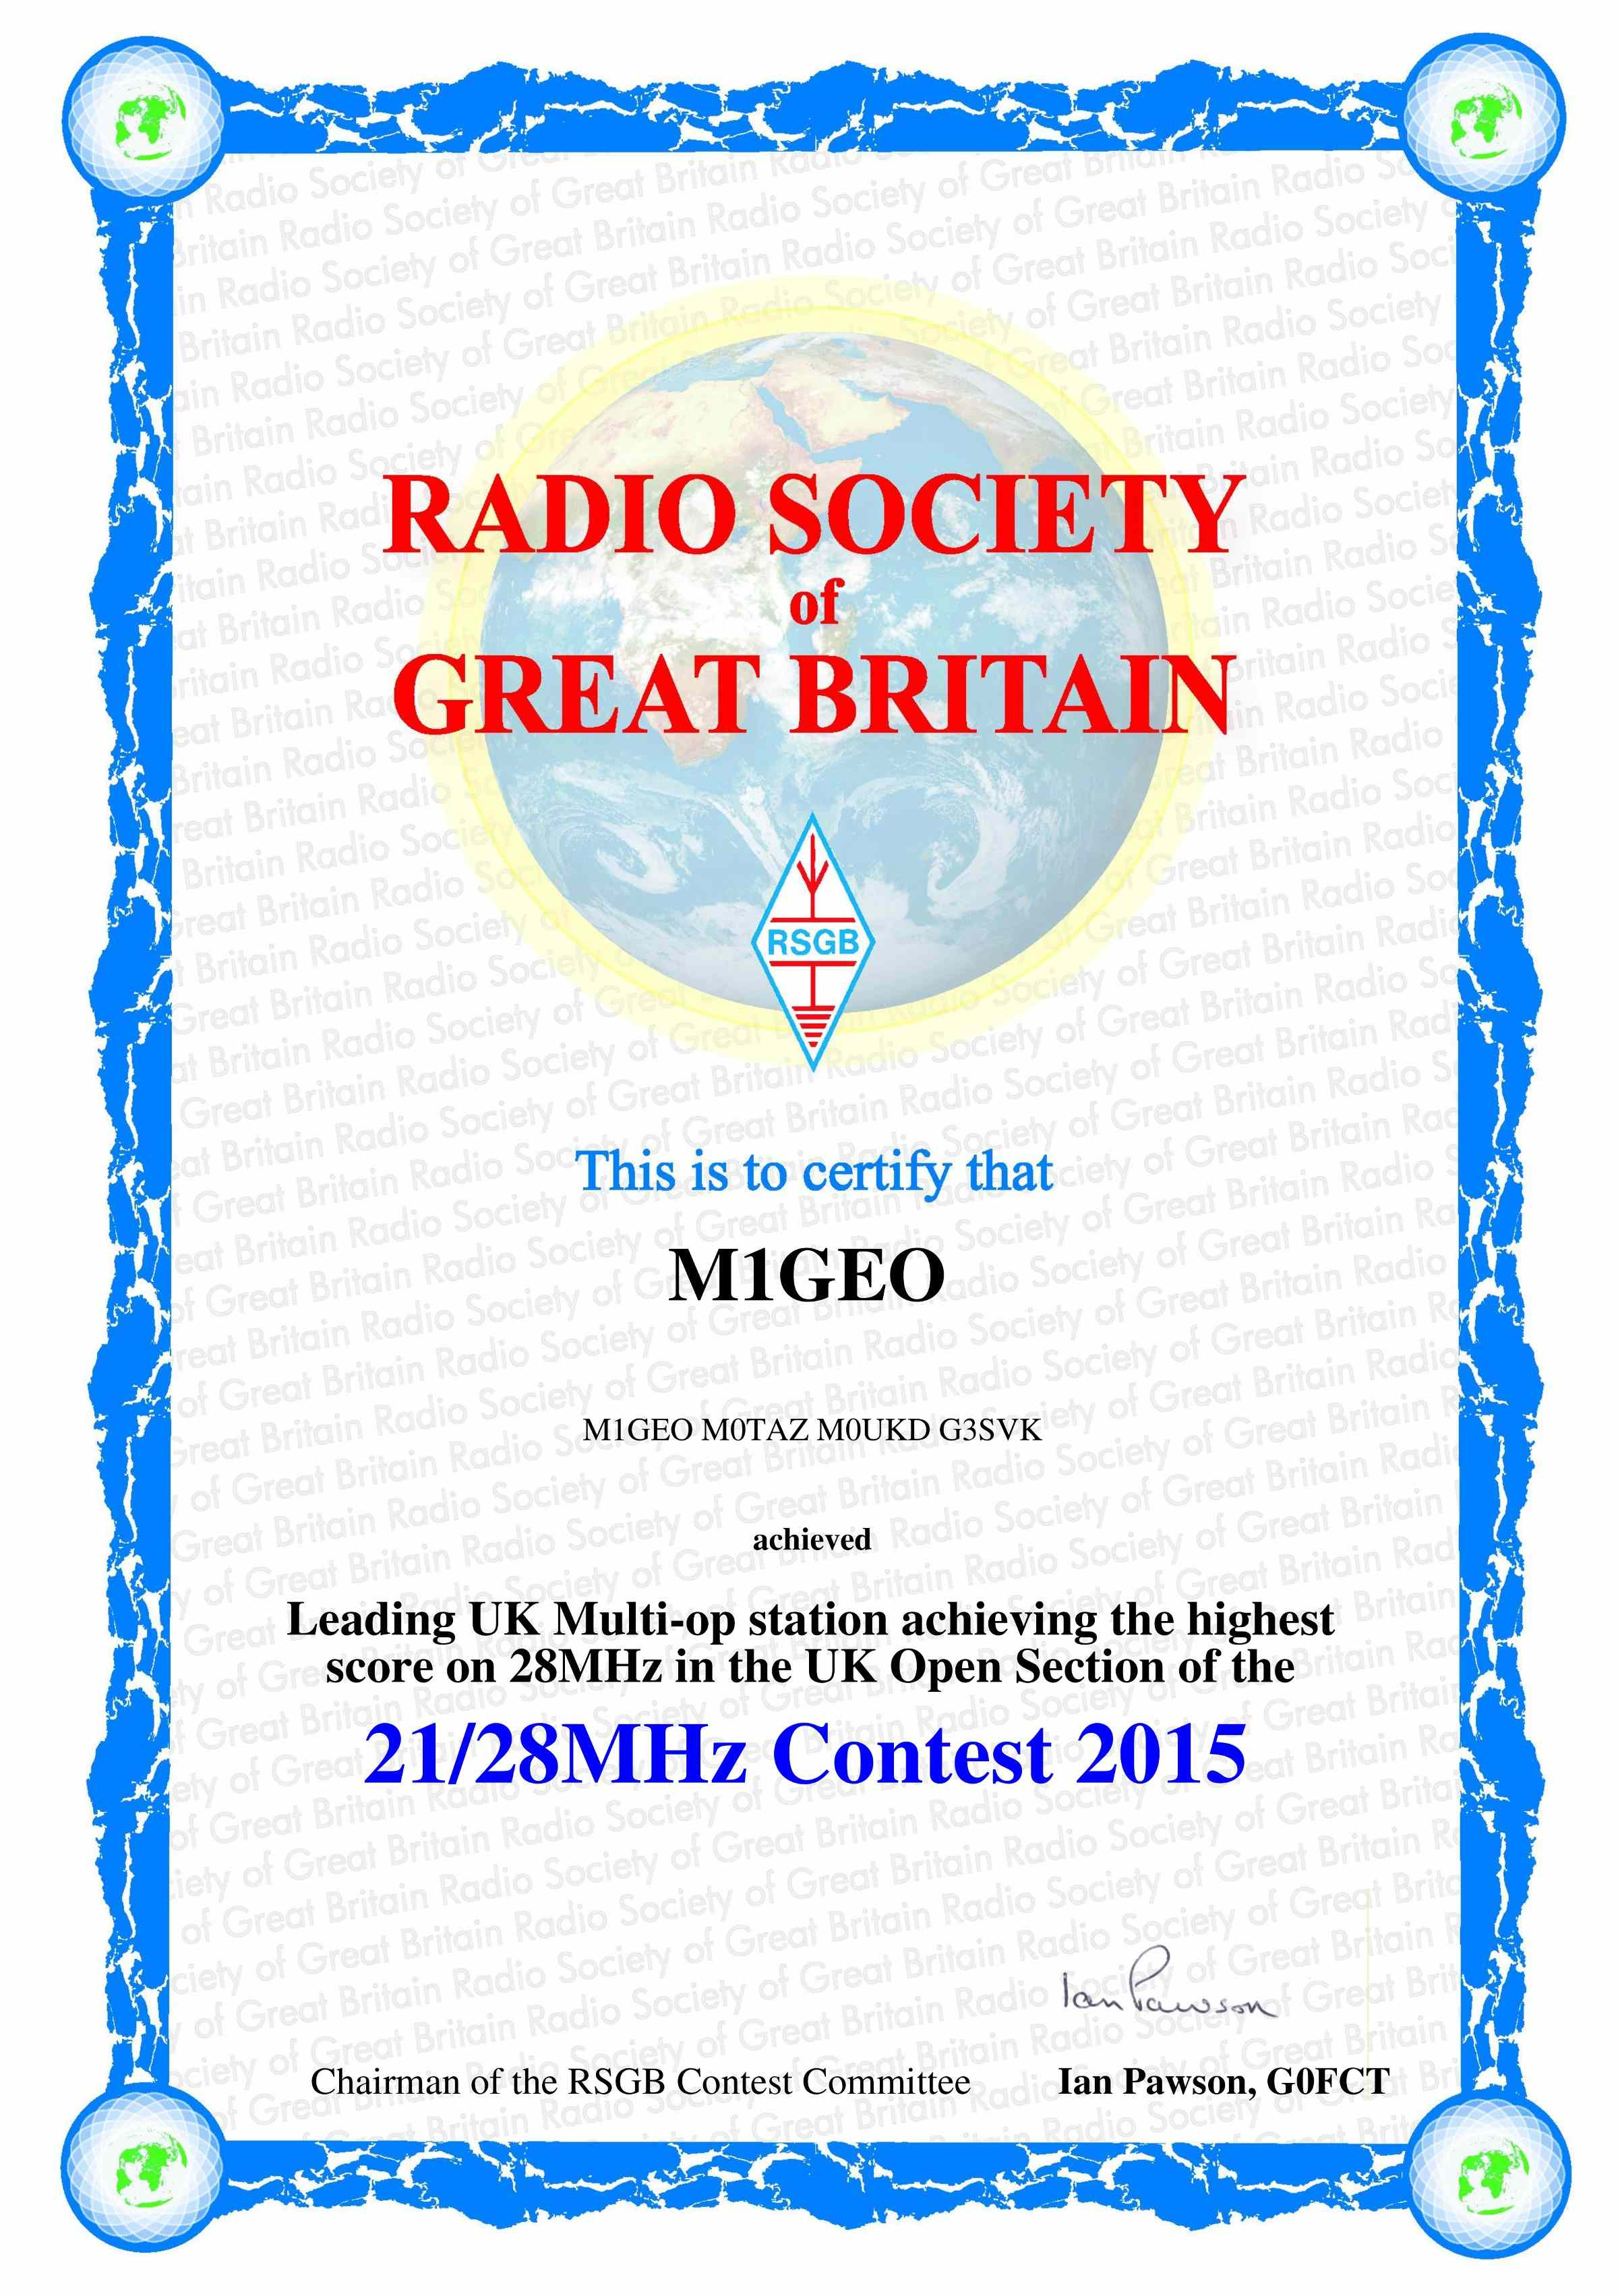 M1GEO - Powditch Trophy 21/28 MHz Contest 2015